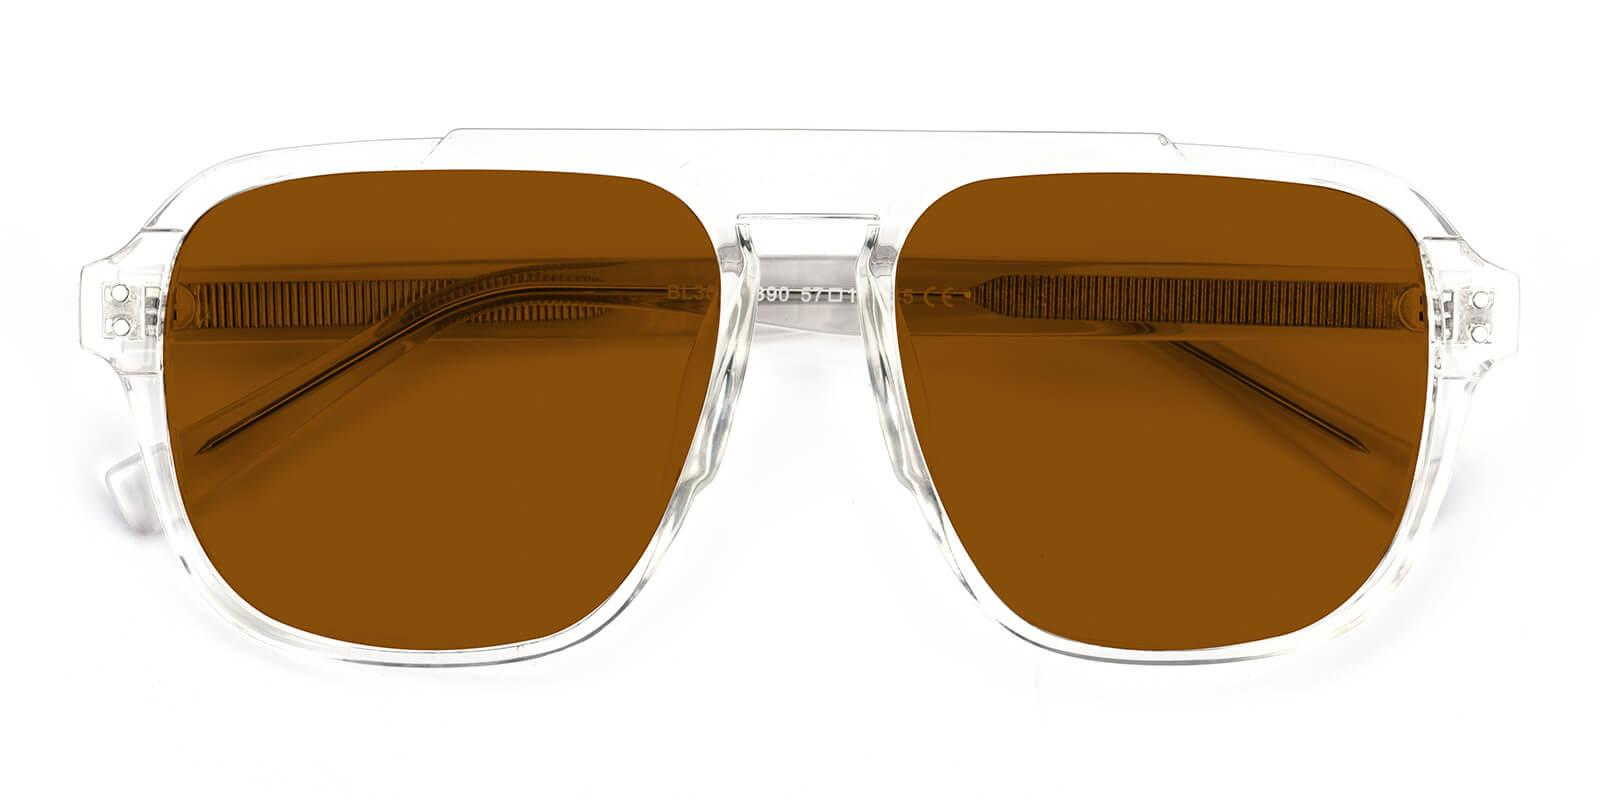 Shoren-Translucent-Square-Acetate-Sunglasses-detail